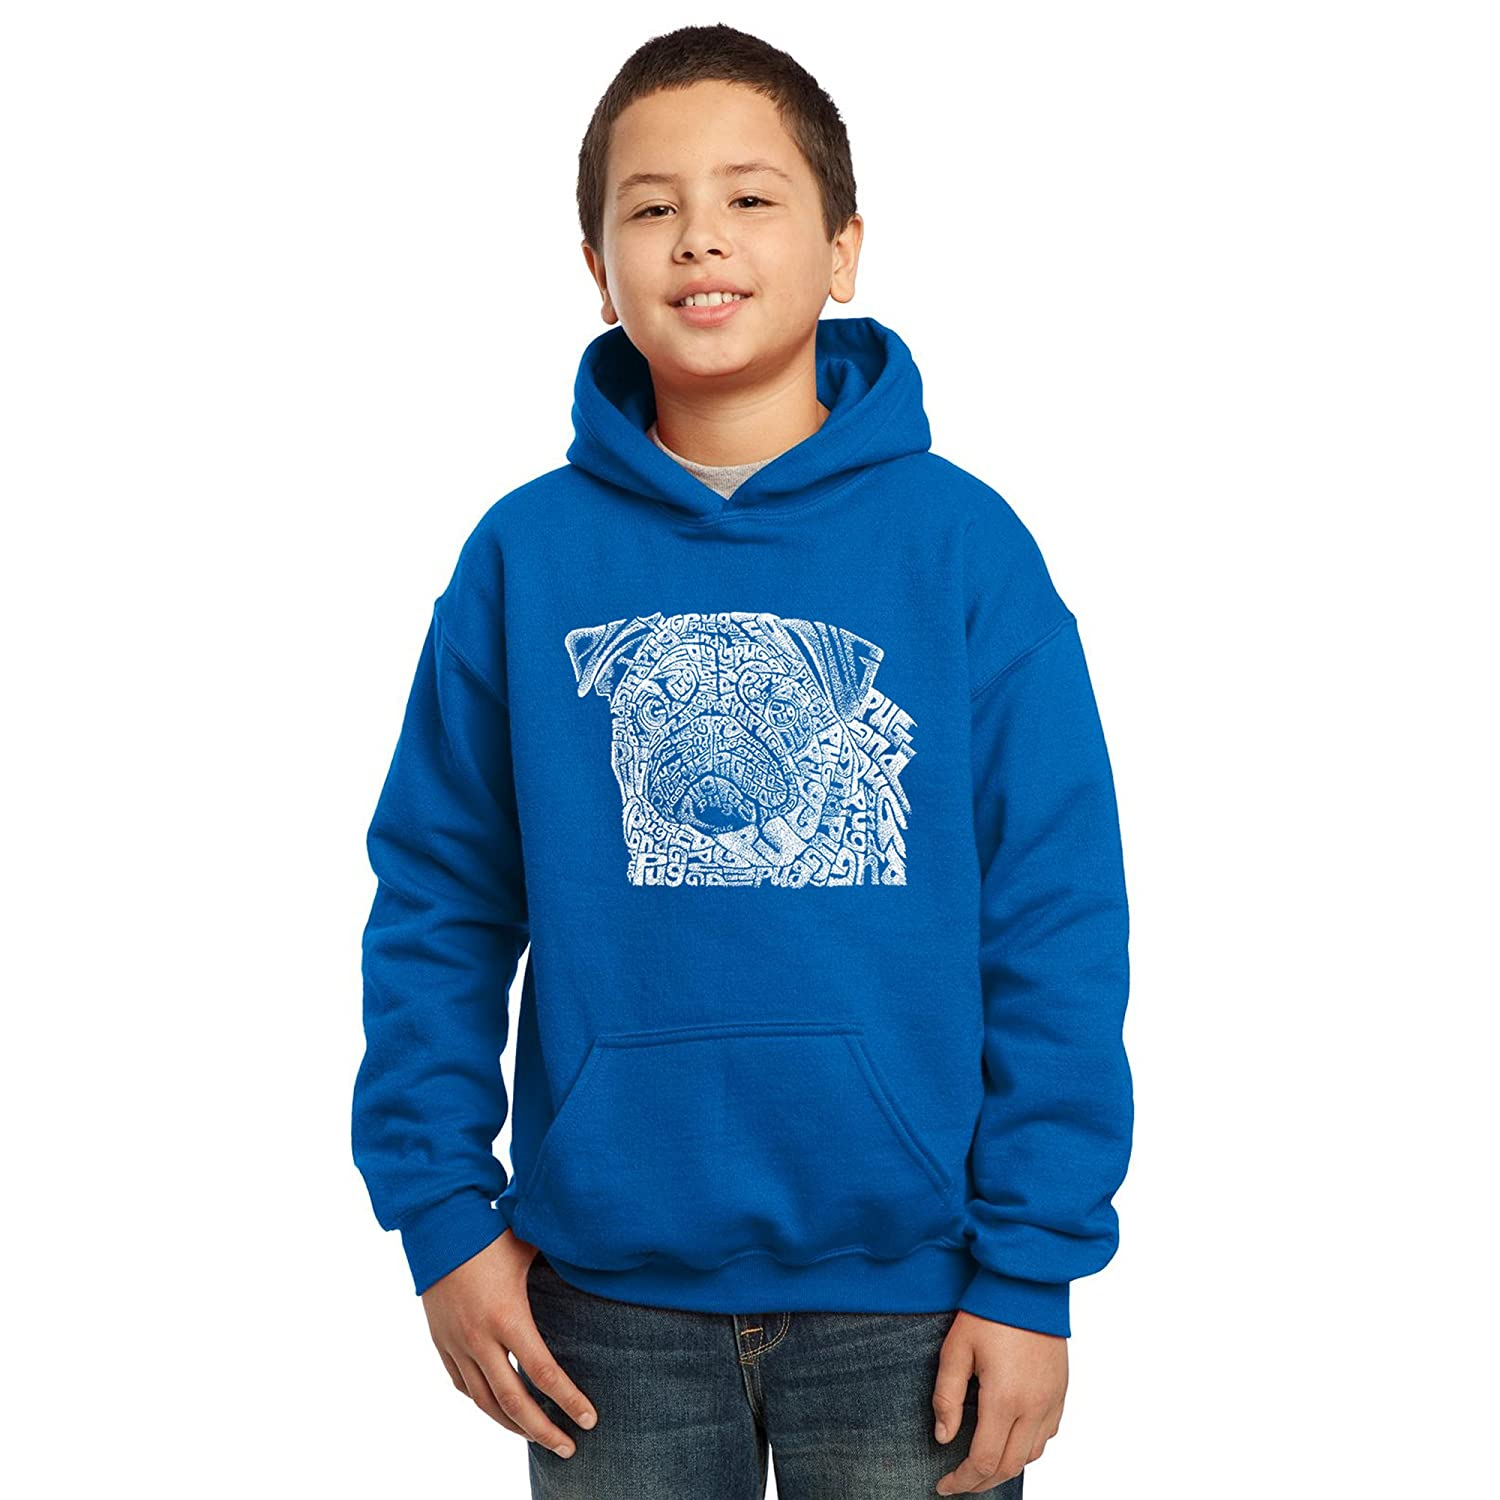 Los Angeles Pop Art Boys Hooded Sweatshirt Pug Face